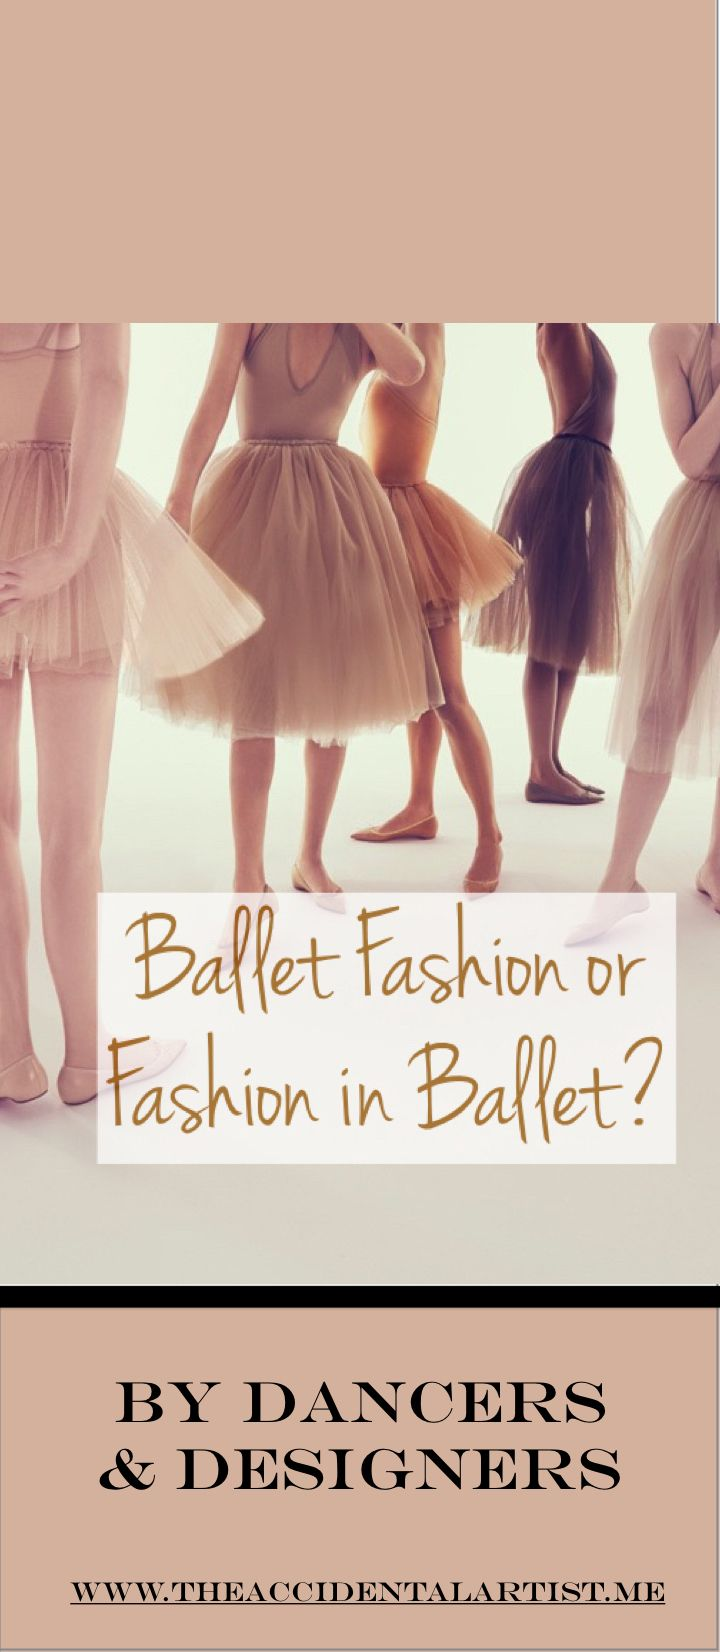 Ballet Fashion on The Accidental Artist~ which came first the ballerina or the designers?